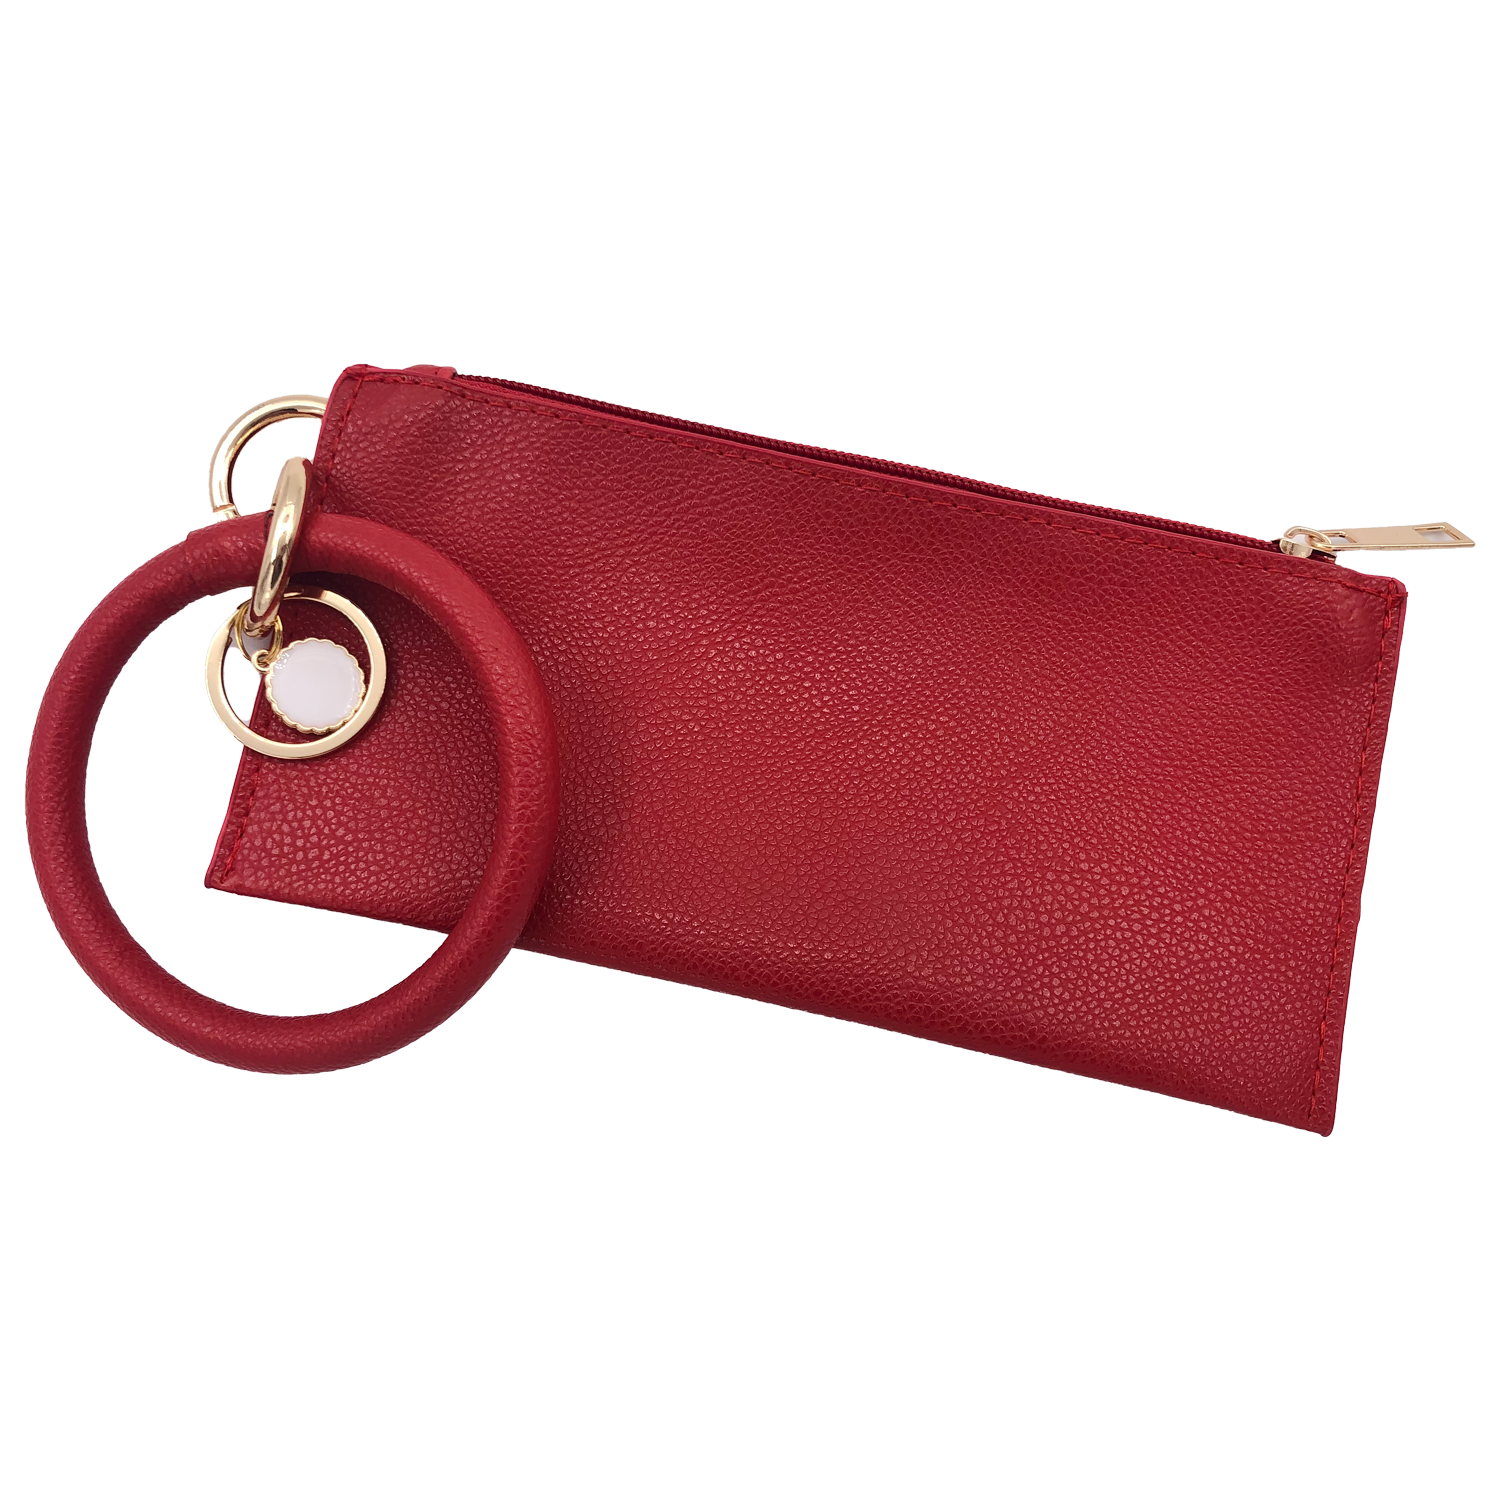 CL-8848 Wristlet Clutch Red